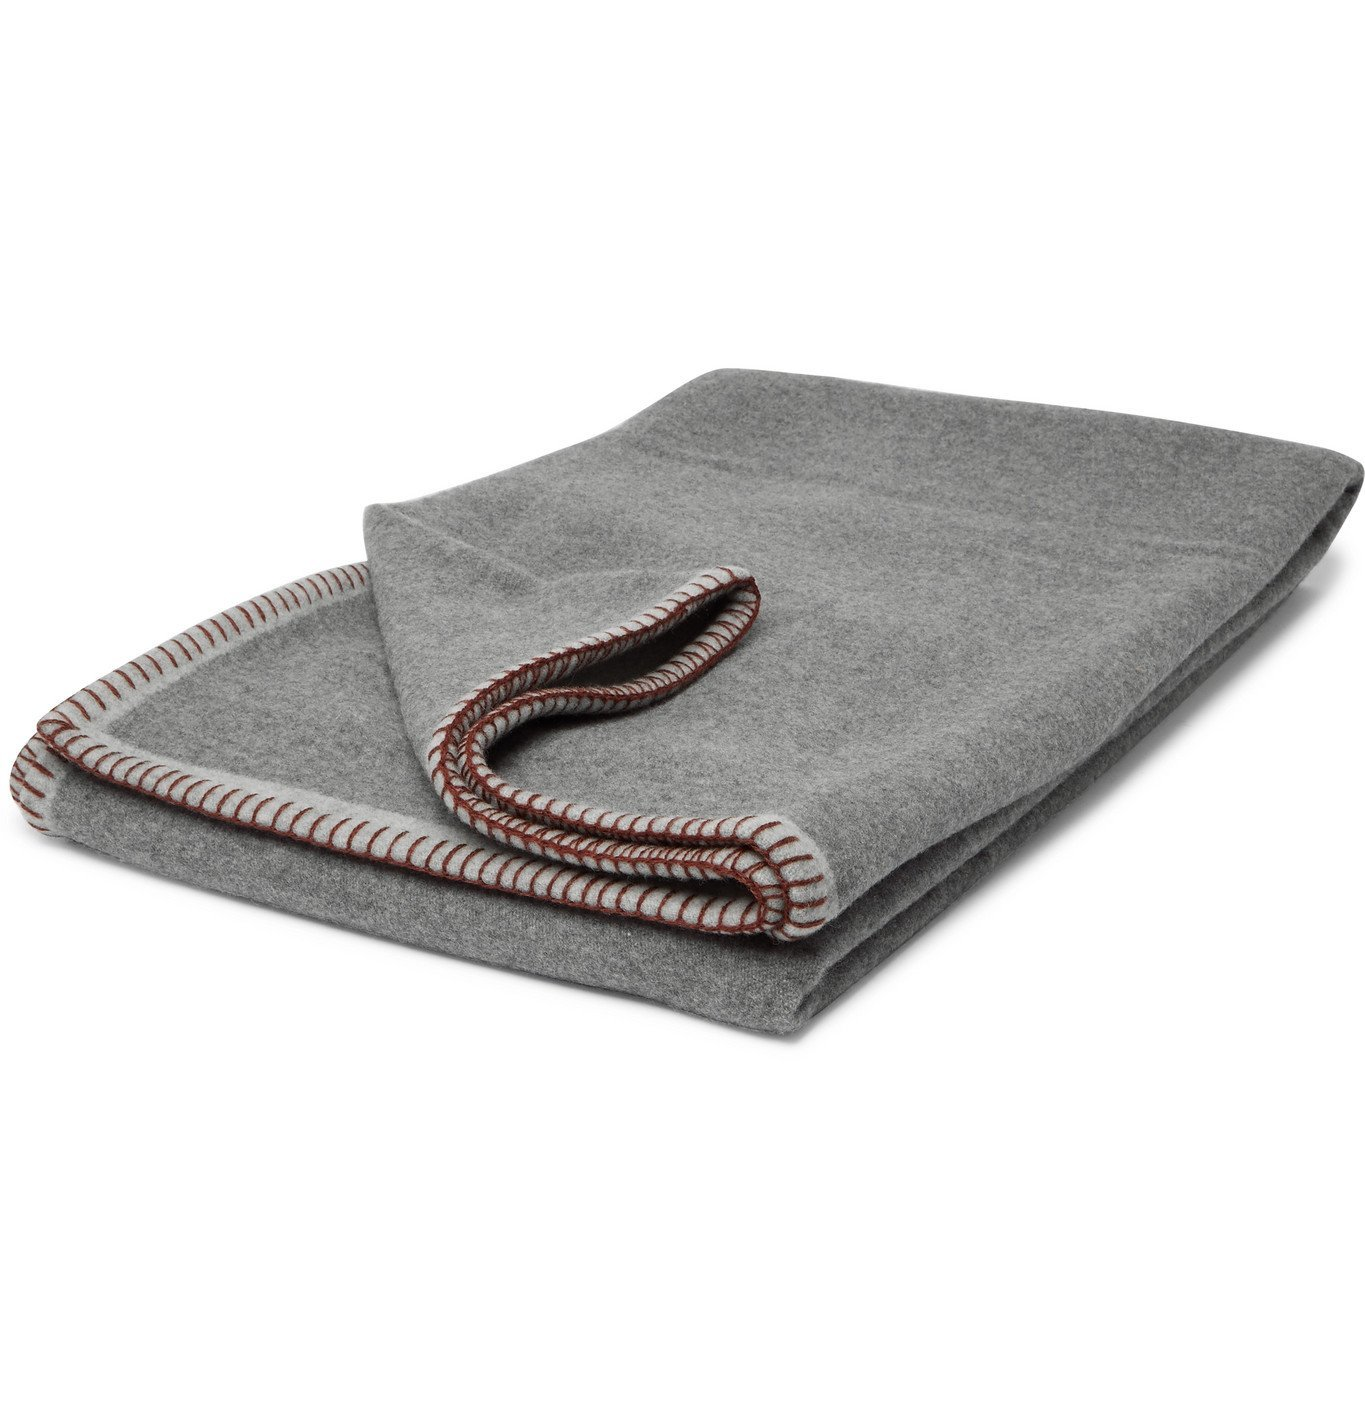 RD.LAB - Wool and Cashmere-Blend Blanket - Gray